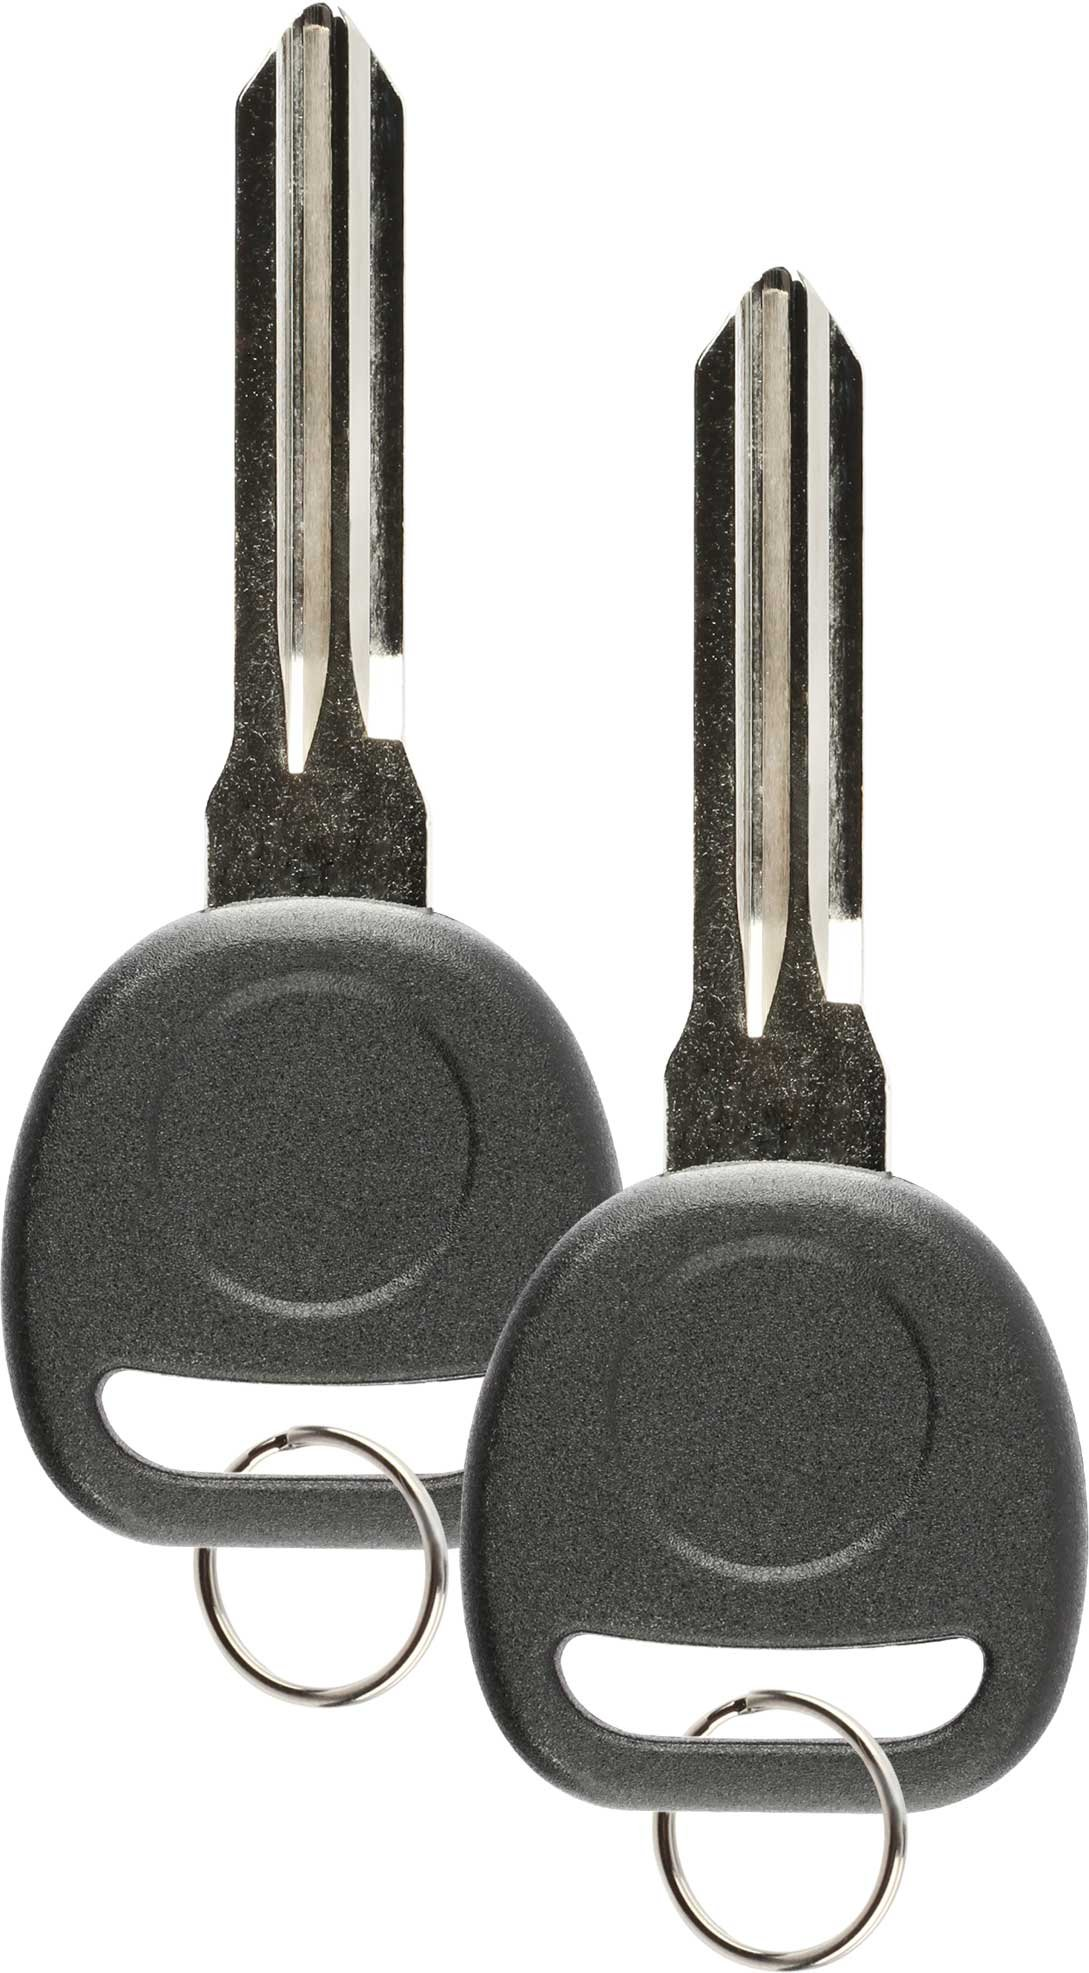 Discount Keyless Replacement Ignition Transponder Uncut Key Compatible with ID 46 Circle + (2 Pack)